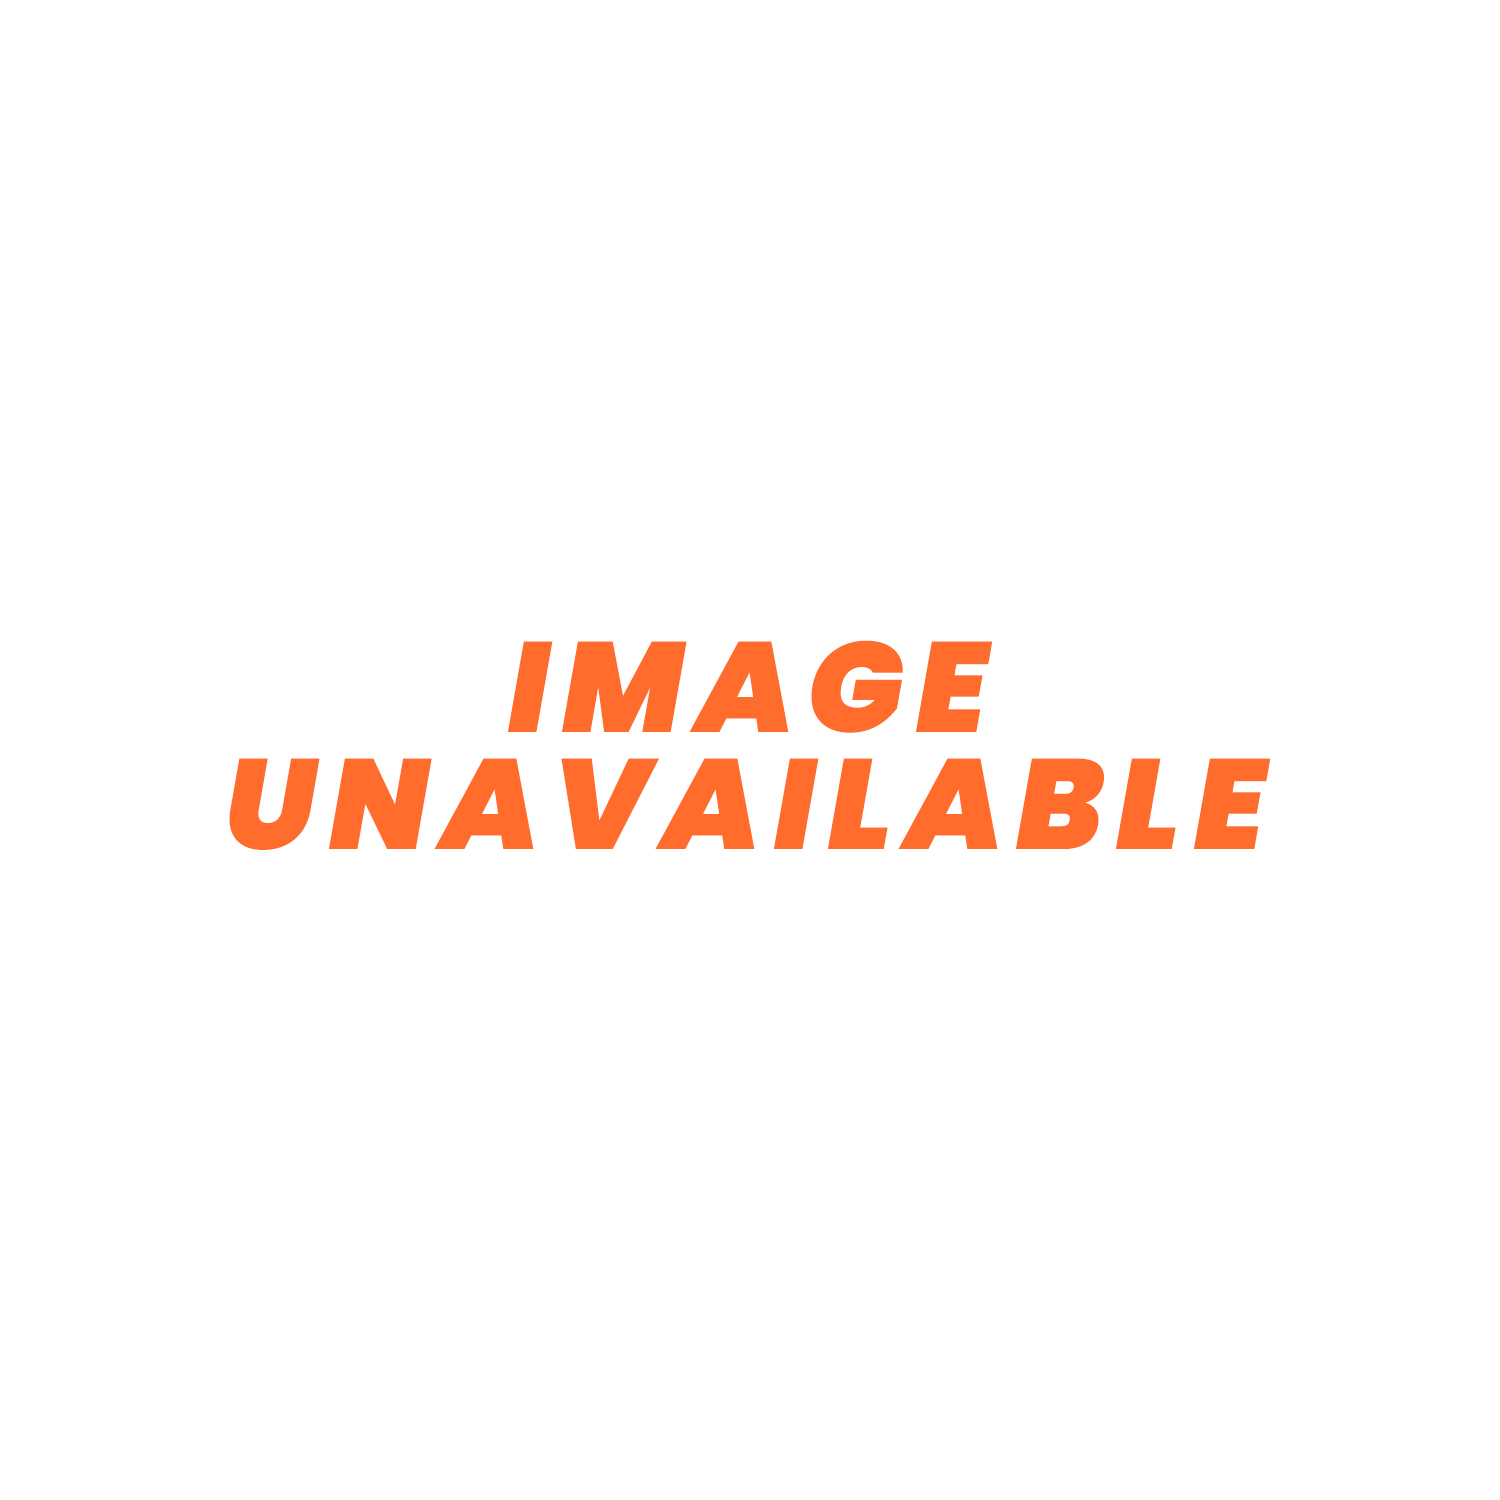 ON/OFF Illuminated Red Rocker Switch